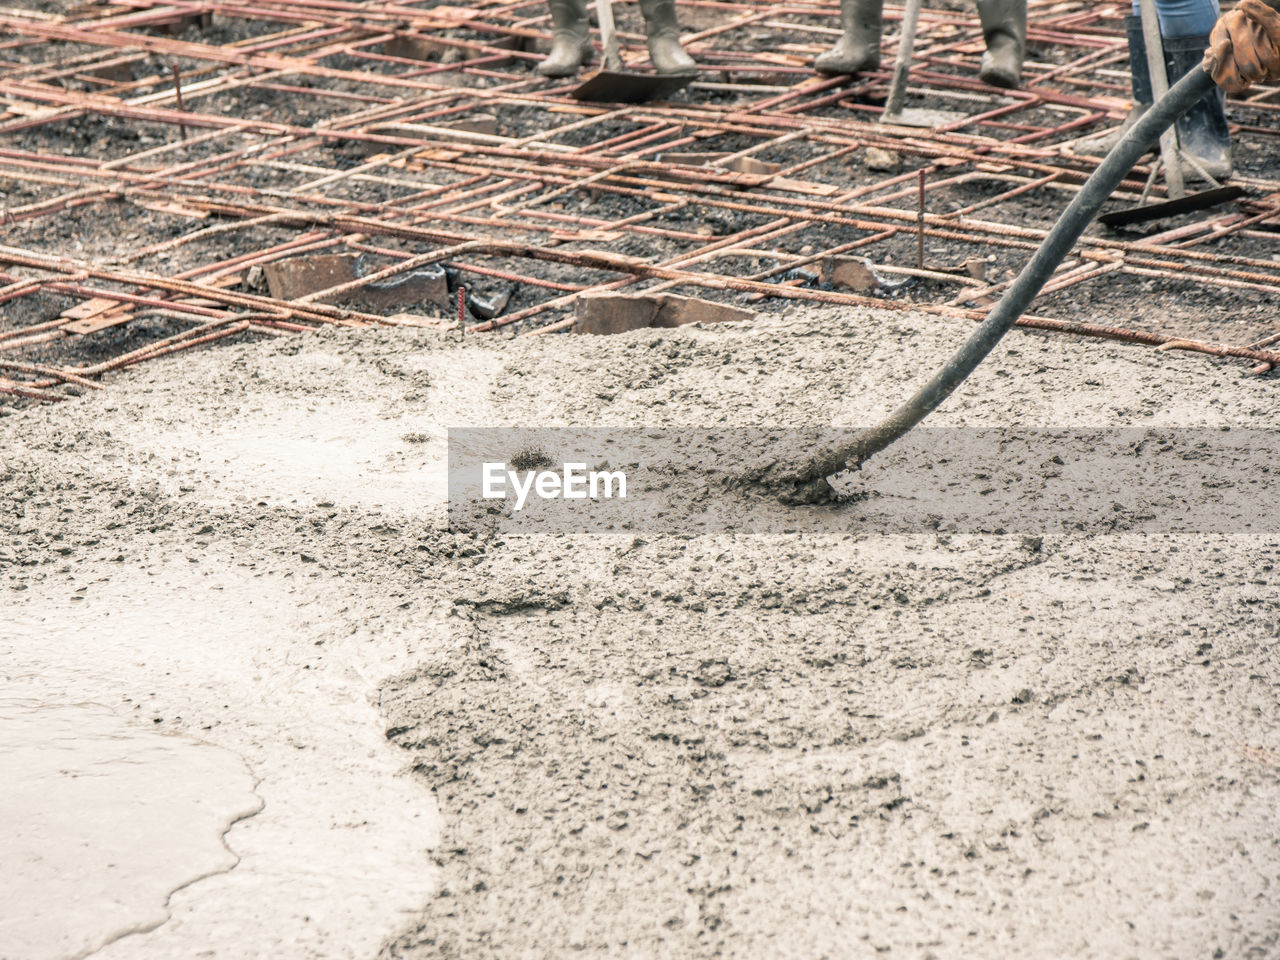 construction industry, construction site, working, industry, road construction, occupation, equipment, day, development, outdoors, construction material, land, human body part, people, architecture, machinery, nature, dirt, repairing, construction equipment, cement, concrete